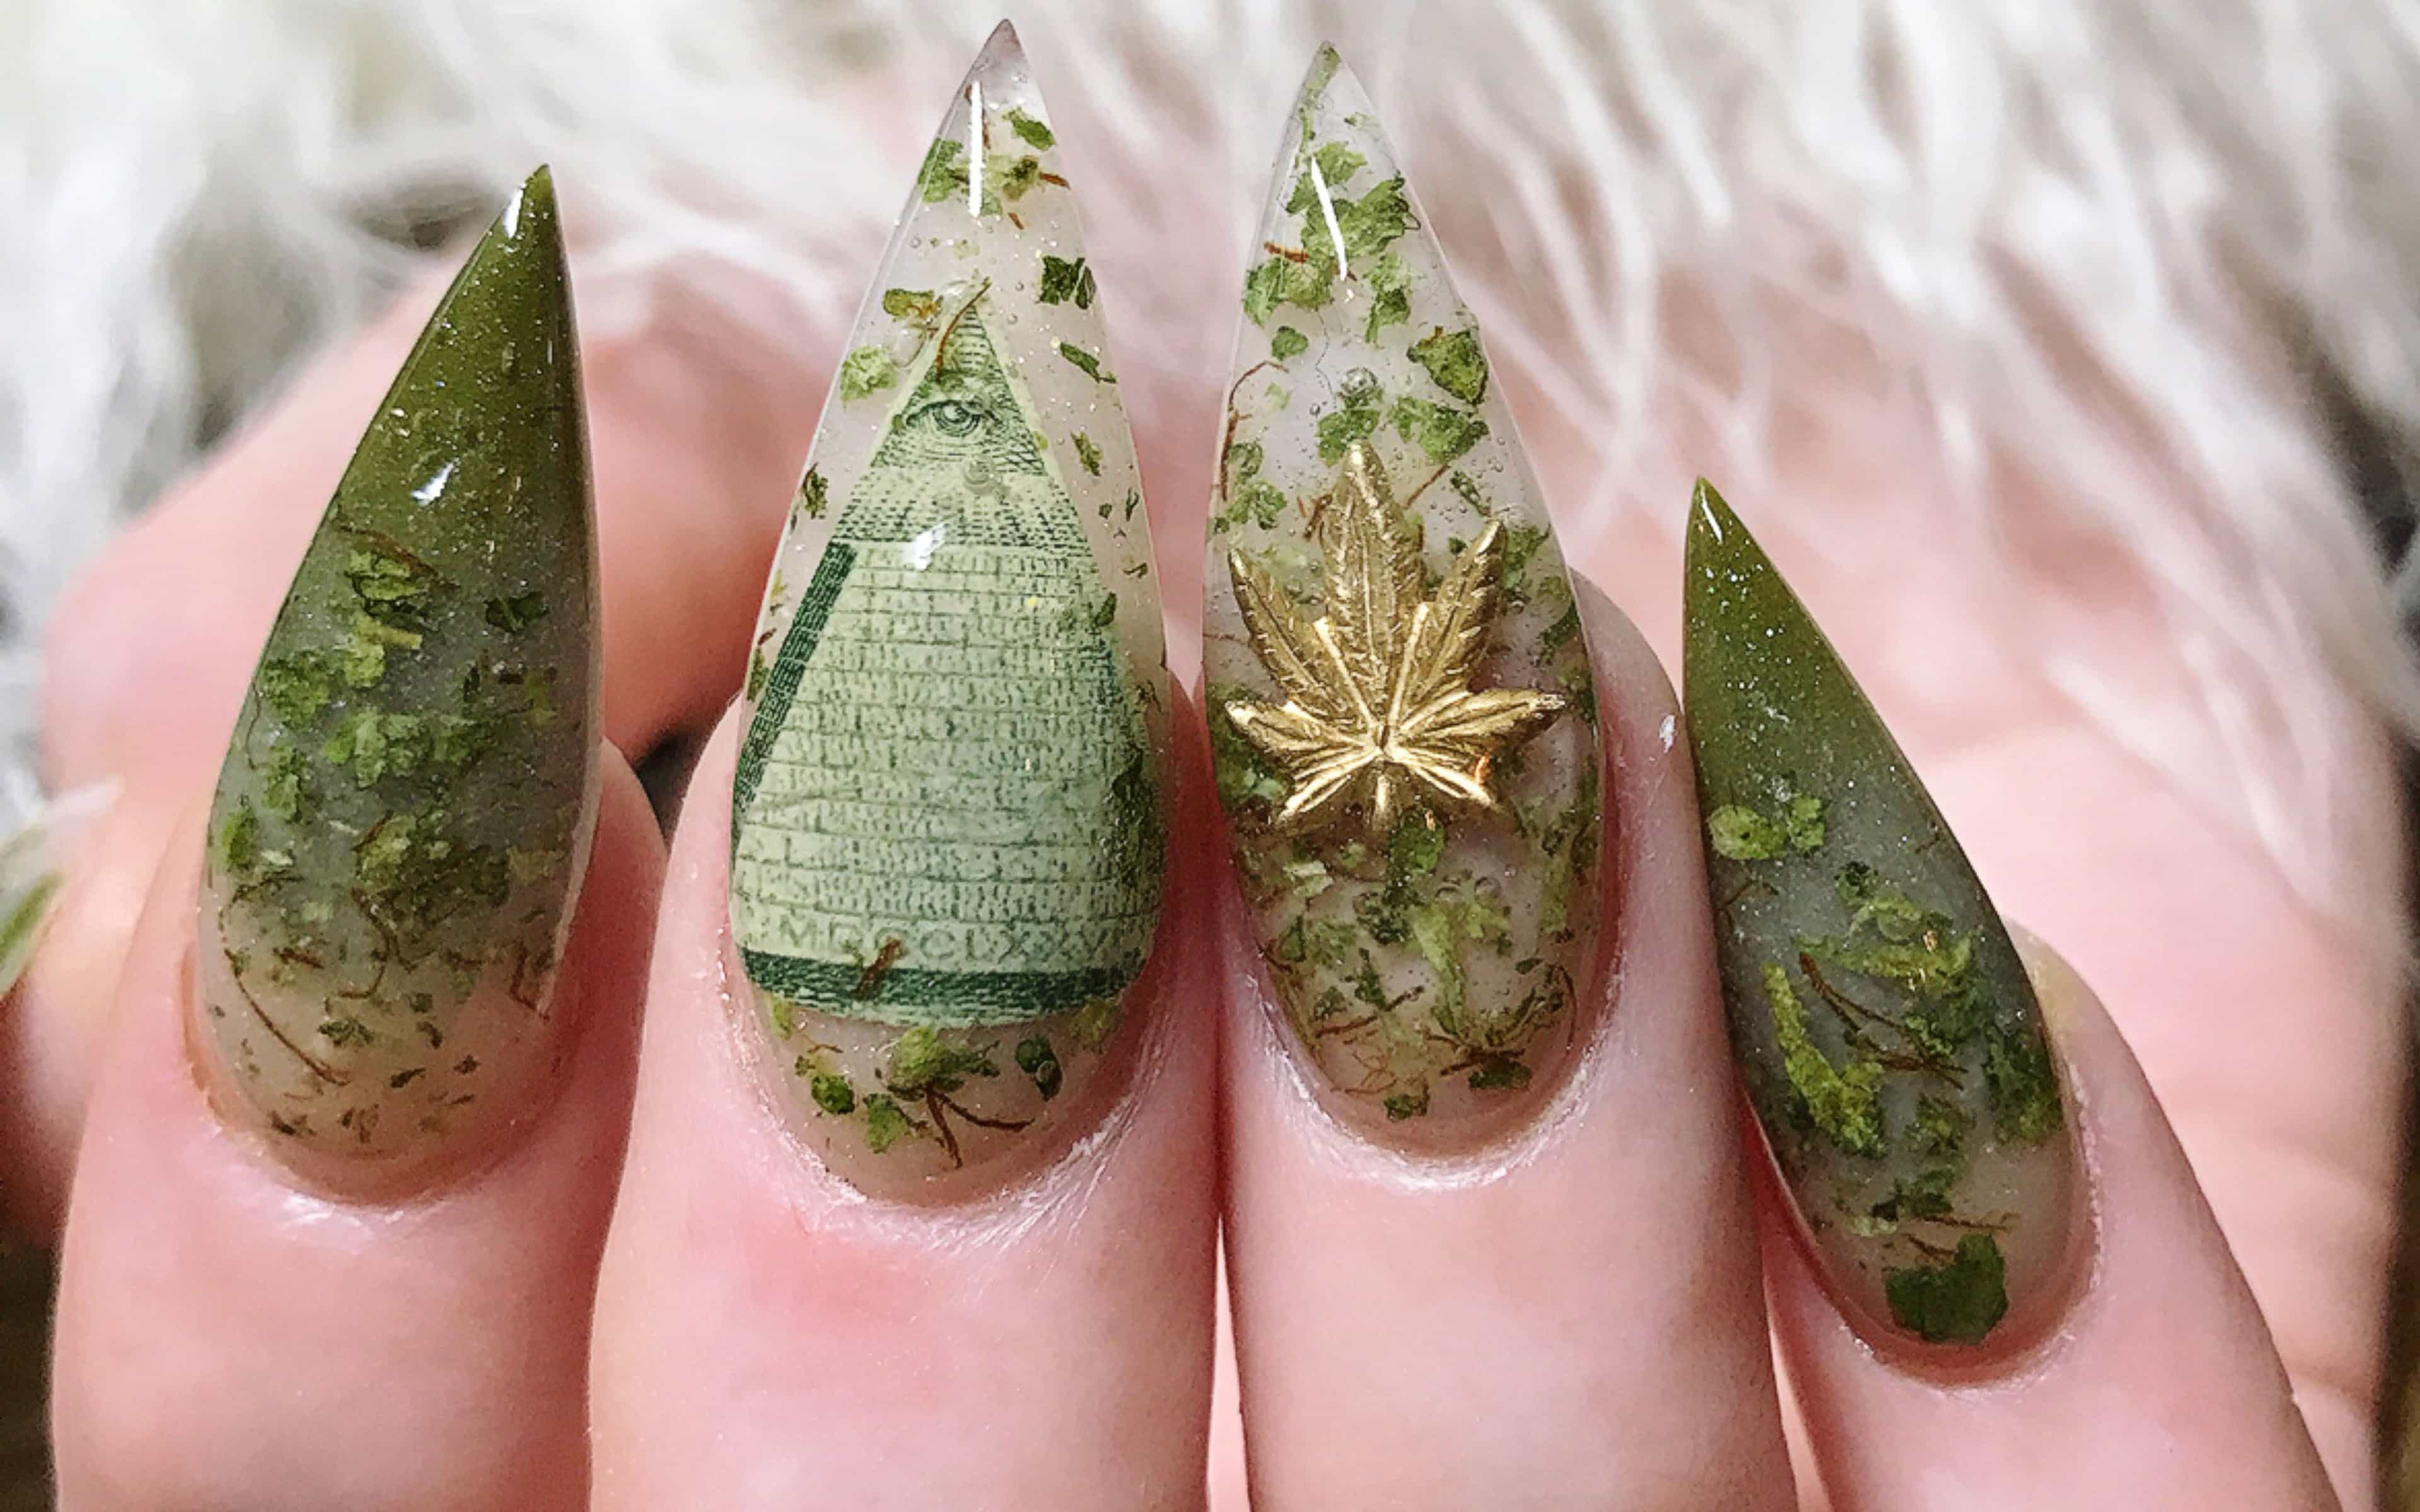 Weed Manicure